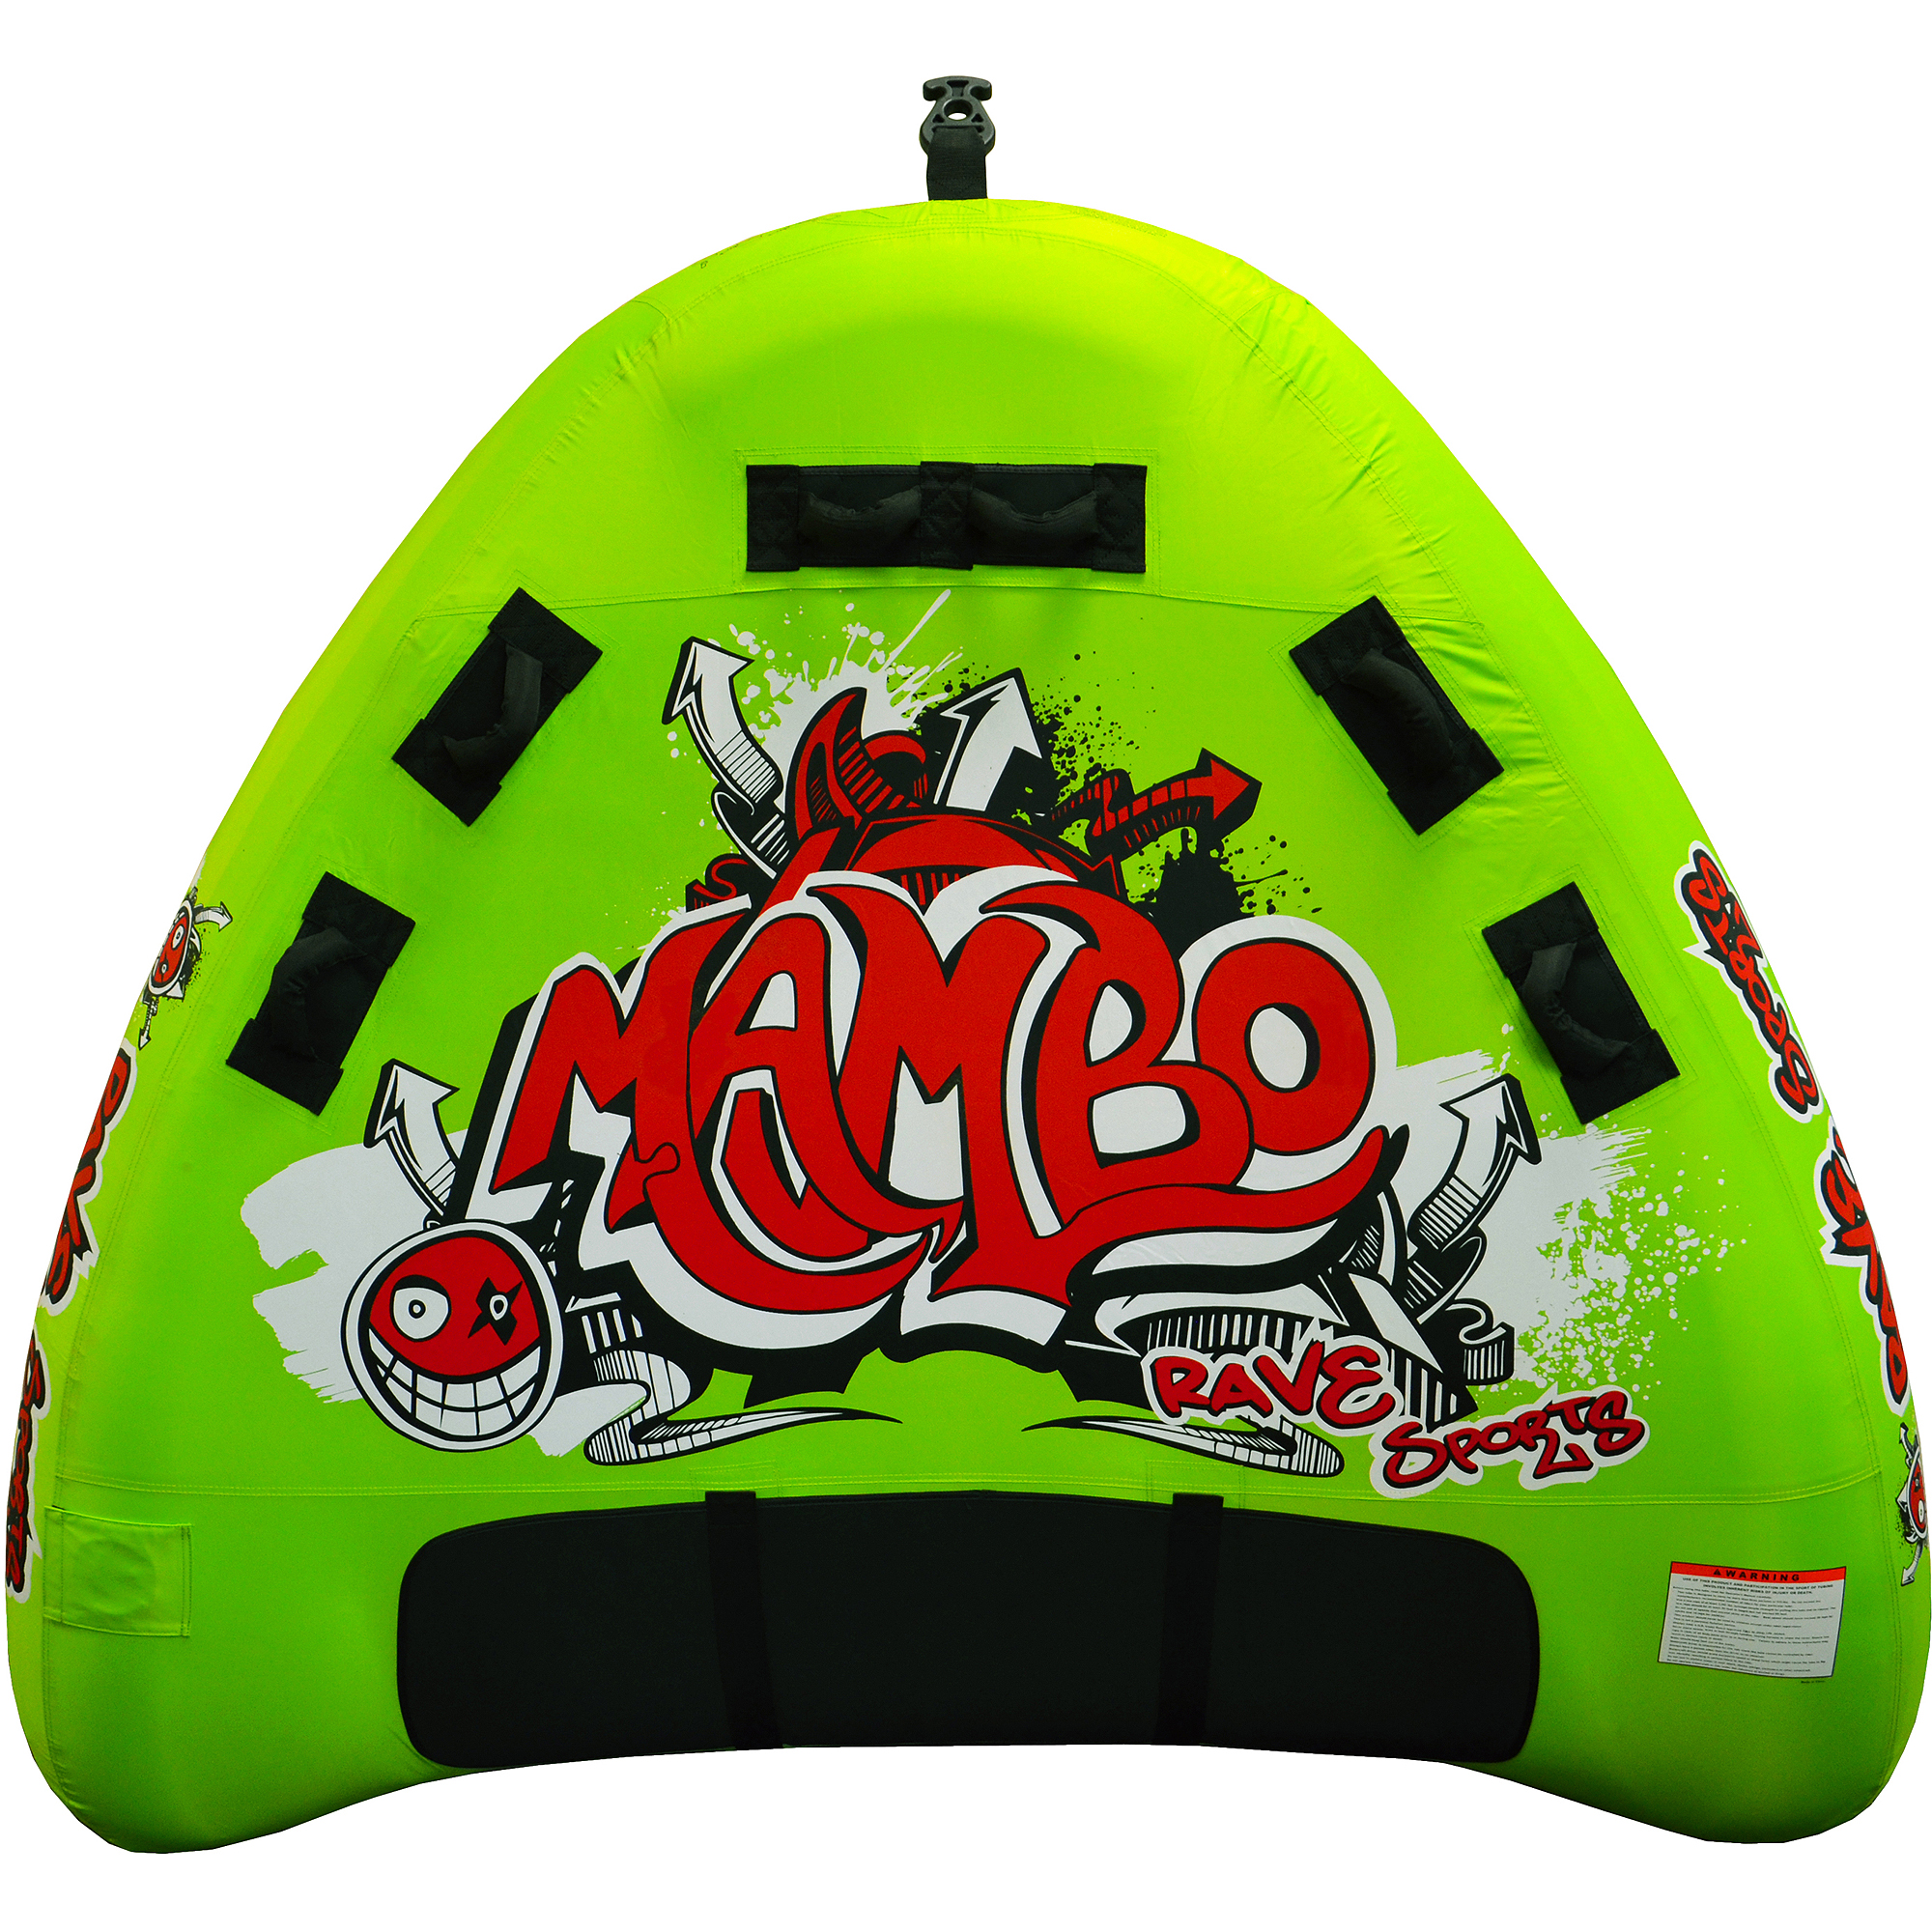 Rave Sports Mambo Swept Wing Deck 3-Rider Tube Towable